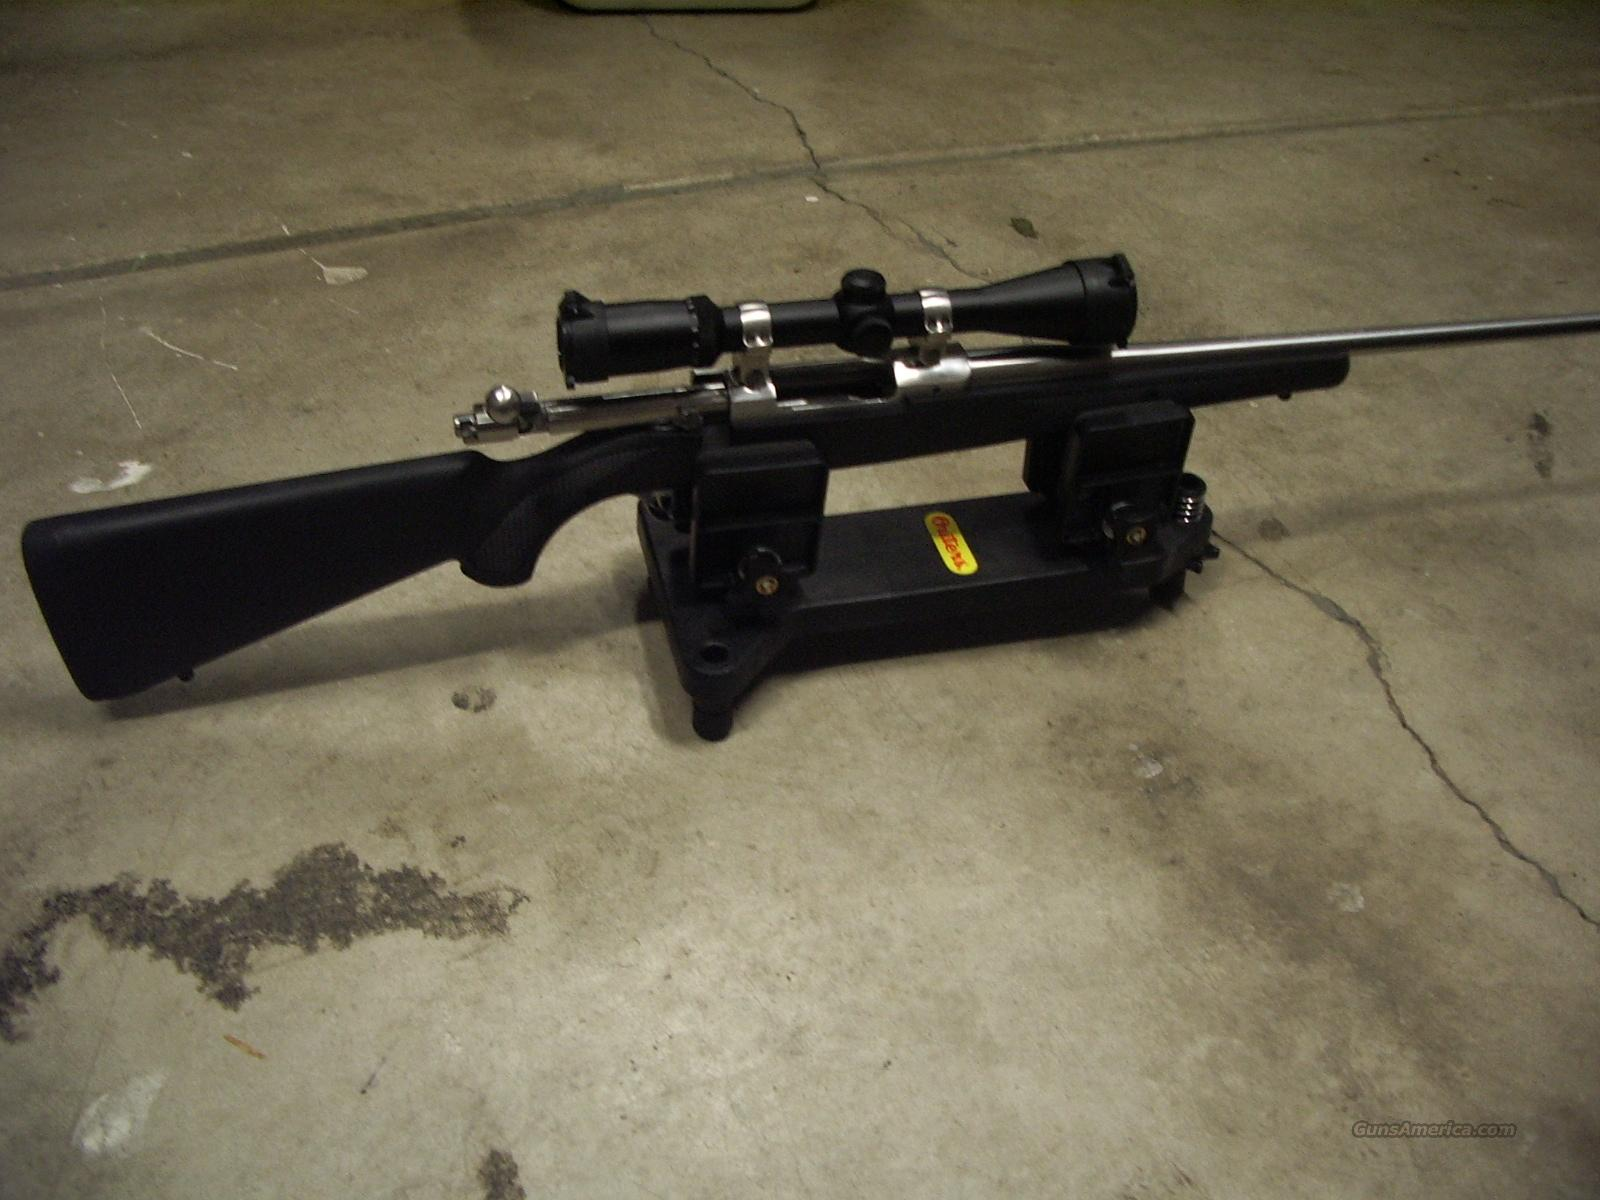 300 WSM stainless ruger MKII M77 with burris scope  Guns > Rifles > Ruger Rifles > Model 77